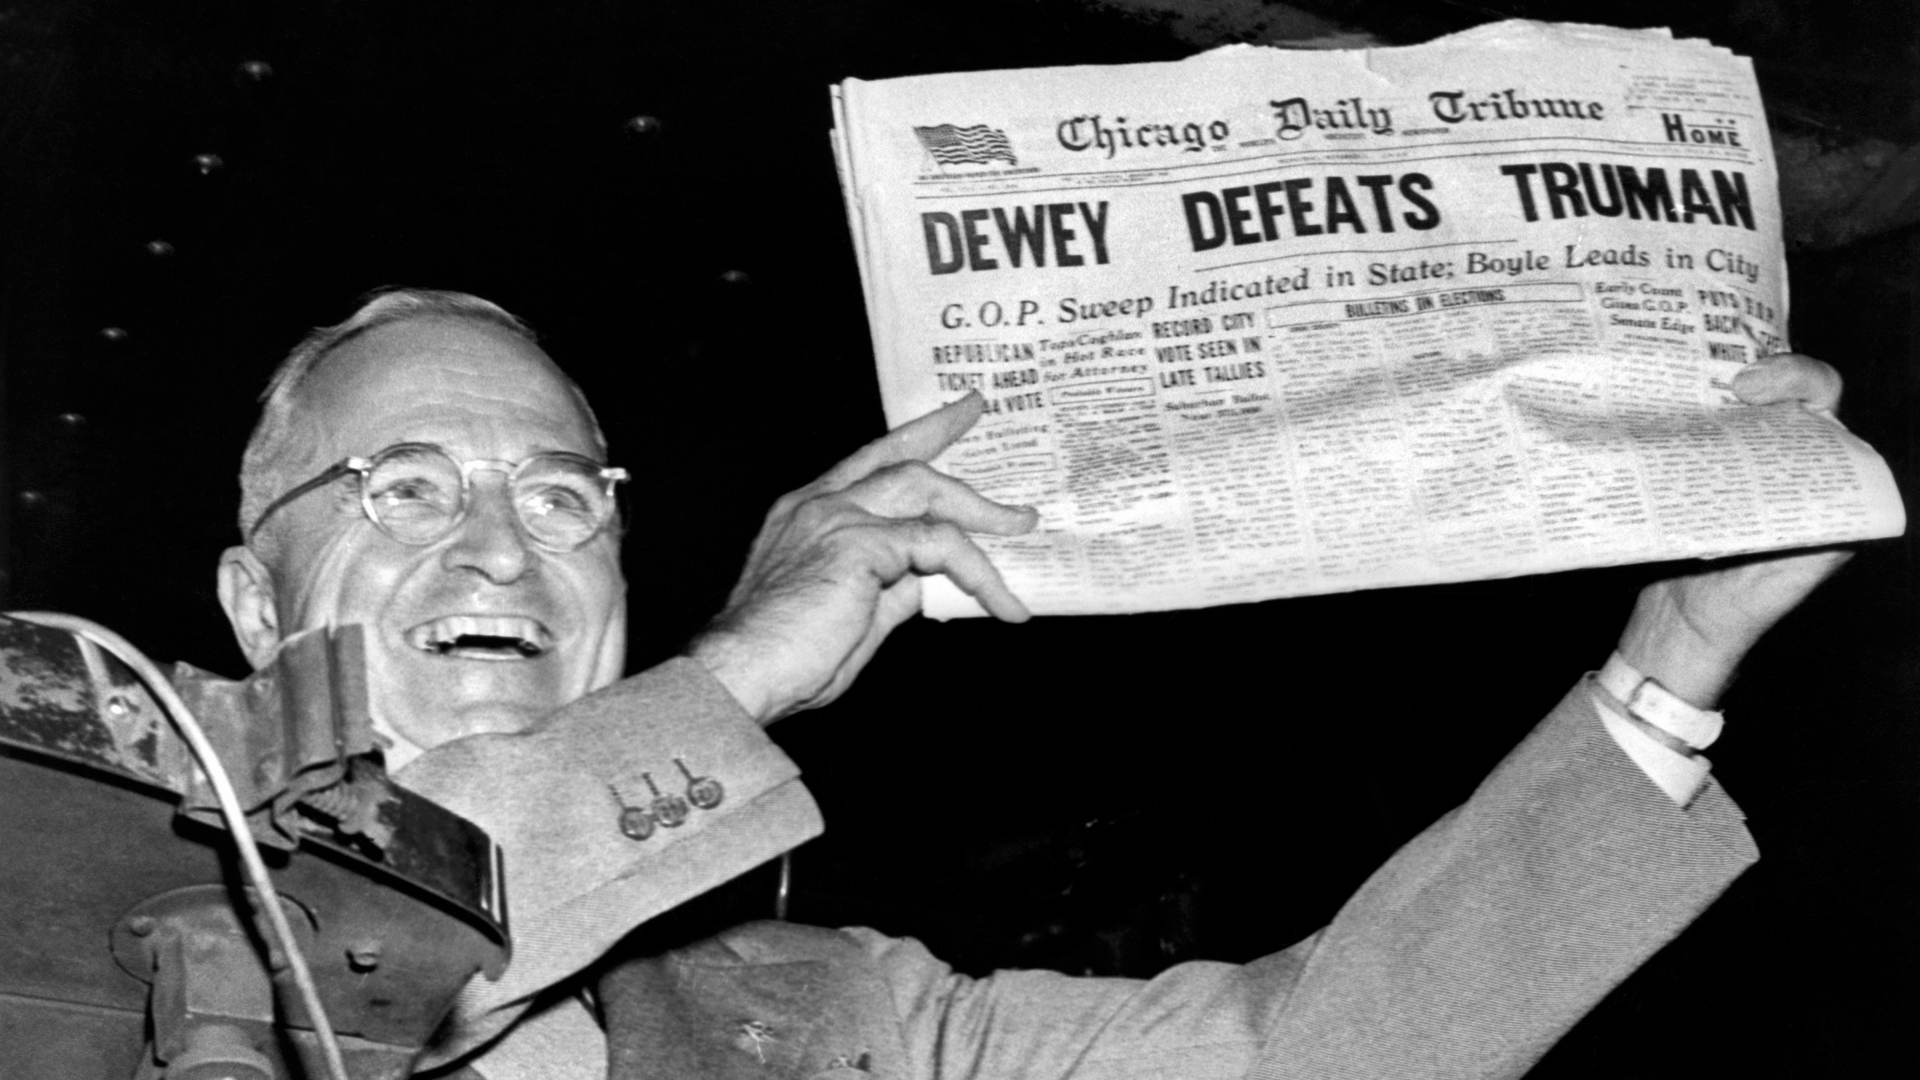 President Harry Truman holding up a copy of the Chicago Daily Tribune incorrectly declaring his defeat to Thomas Dewey in the presidential election in 1948. (Credit: Underwood Archives/Getty Images)